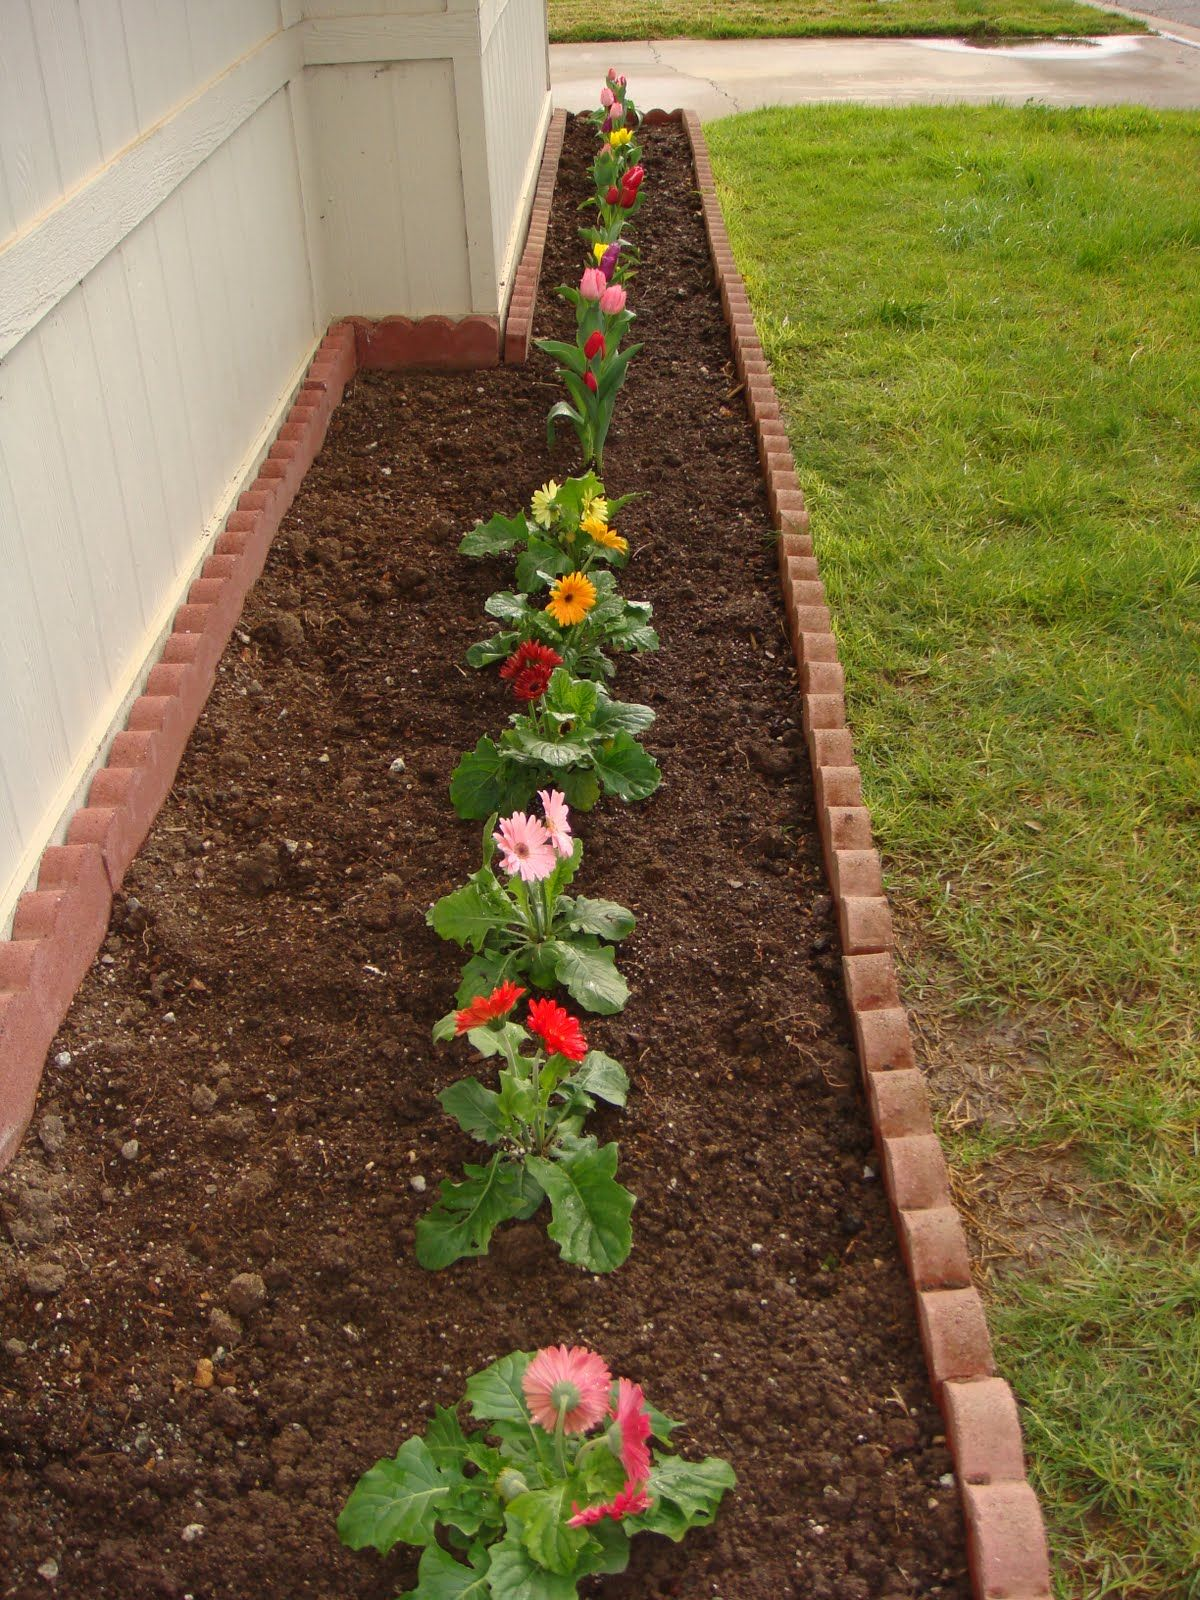 Flower beds my little flower garden my garden ideas for Large flower garden ideas